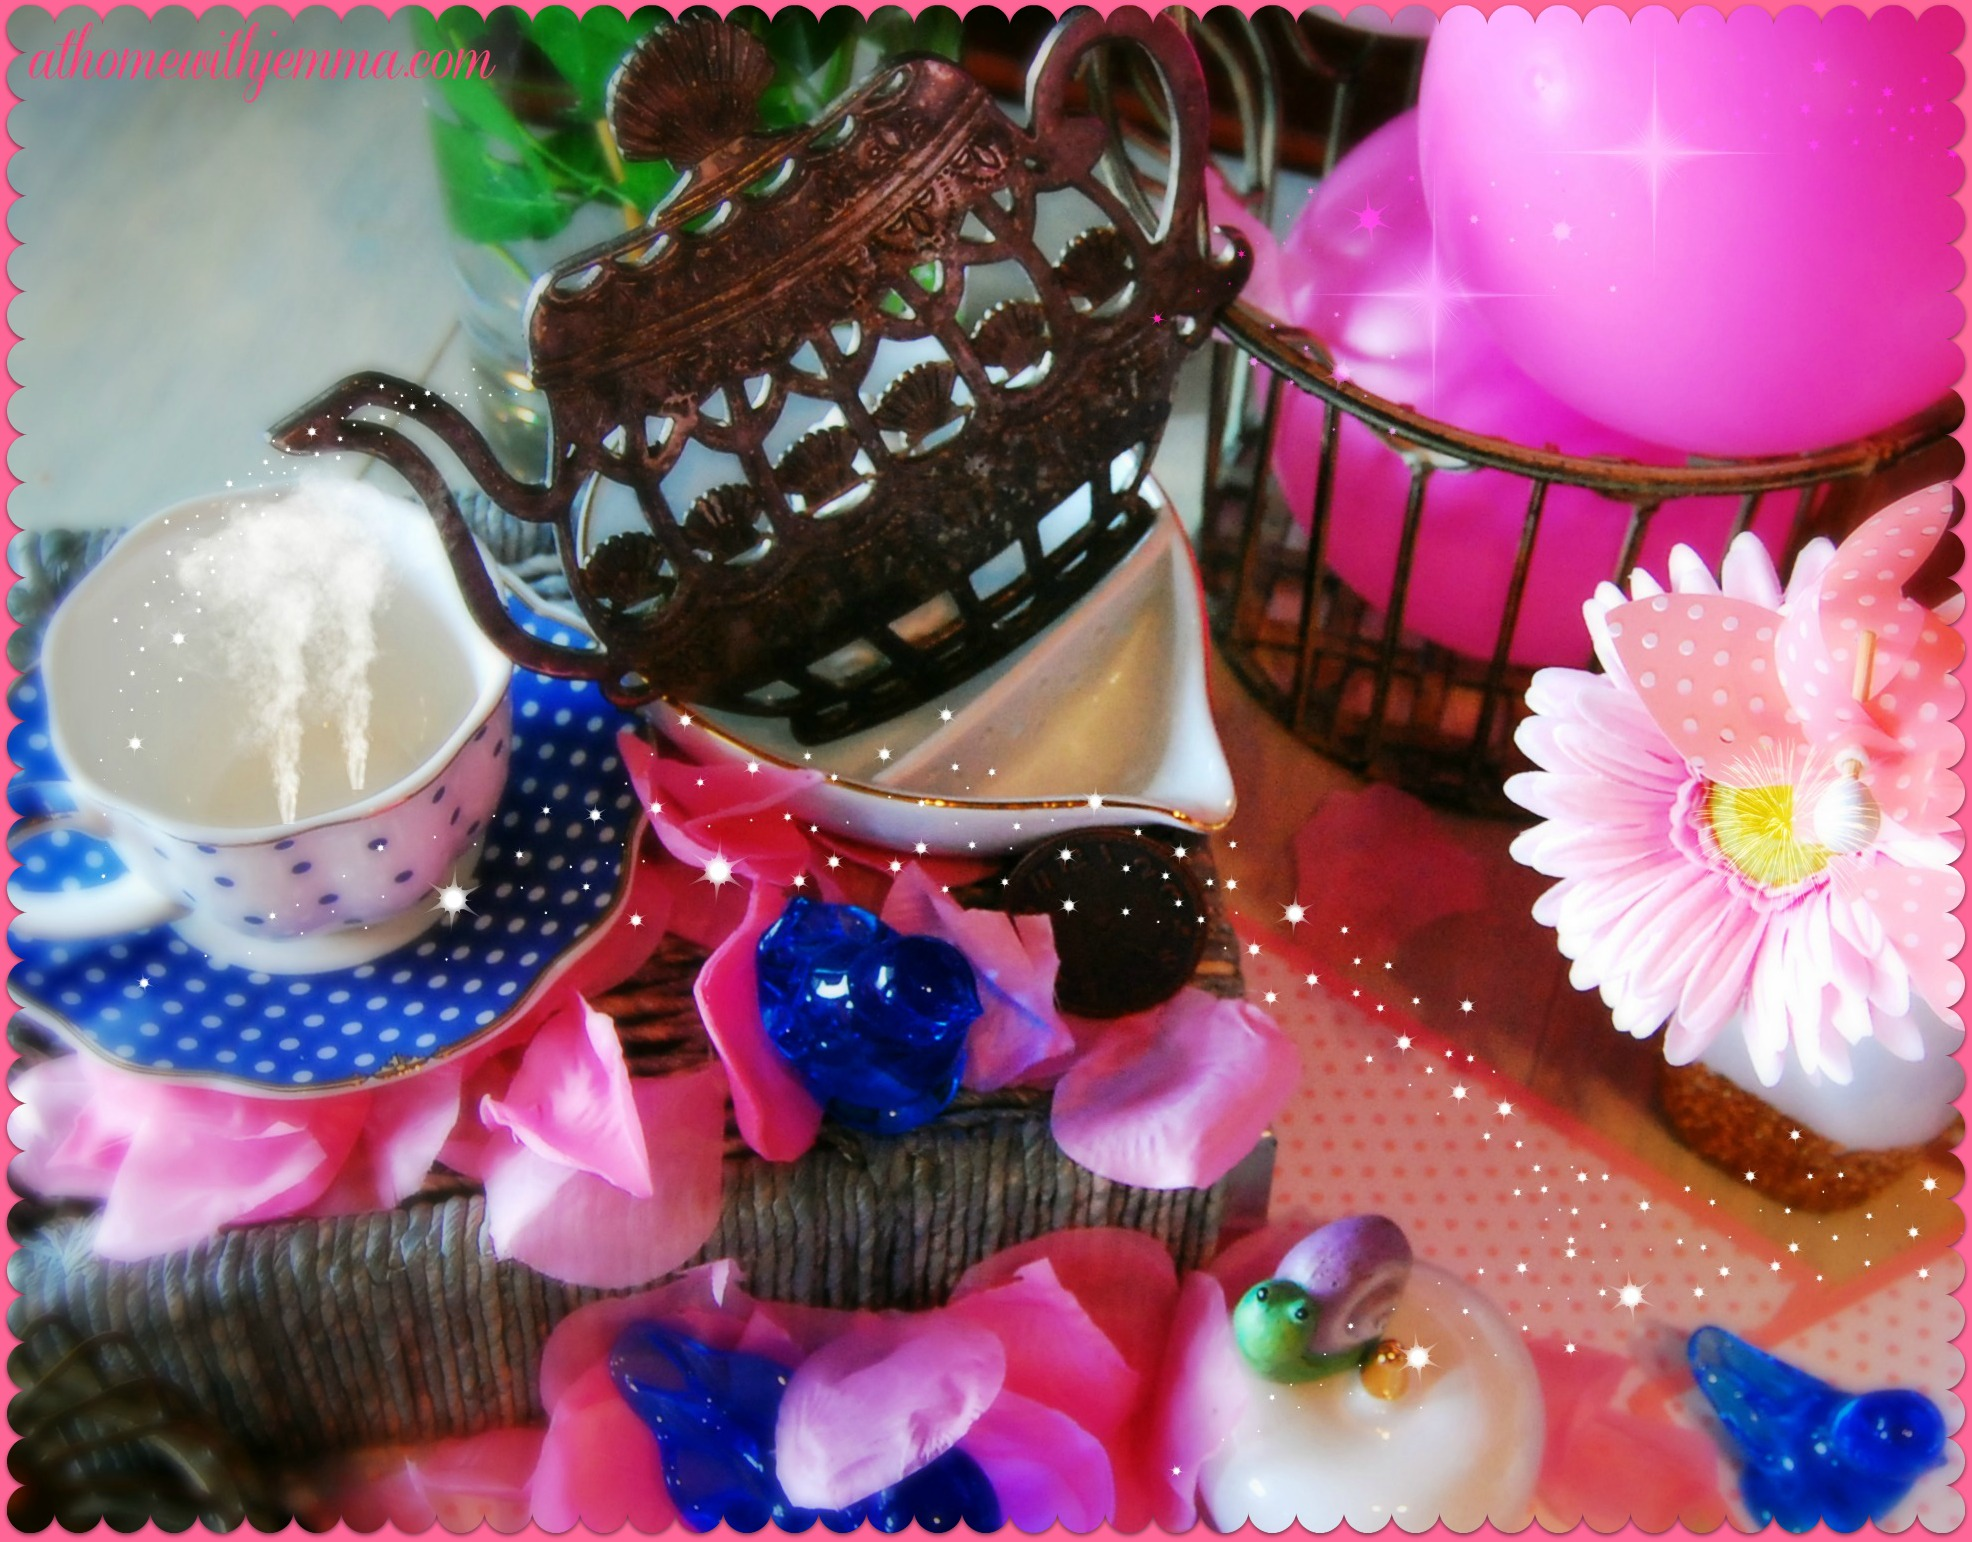 alice-wonderland-whimsy-Mad-tea-party-athomewithjemma